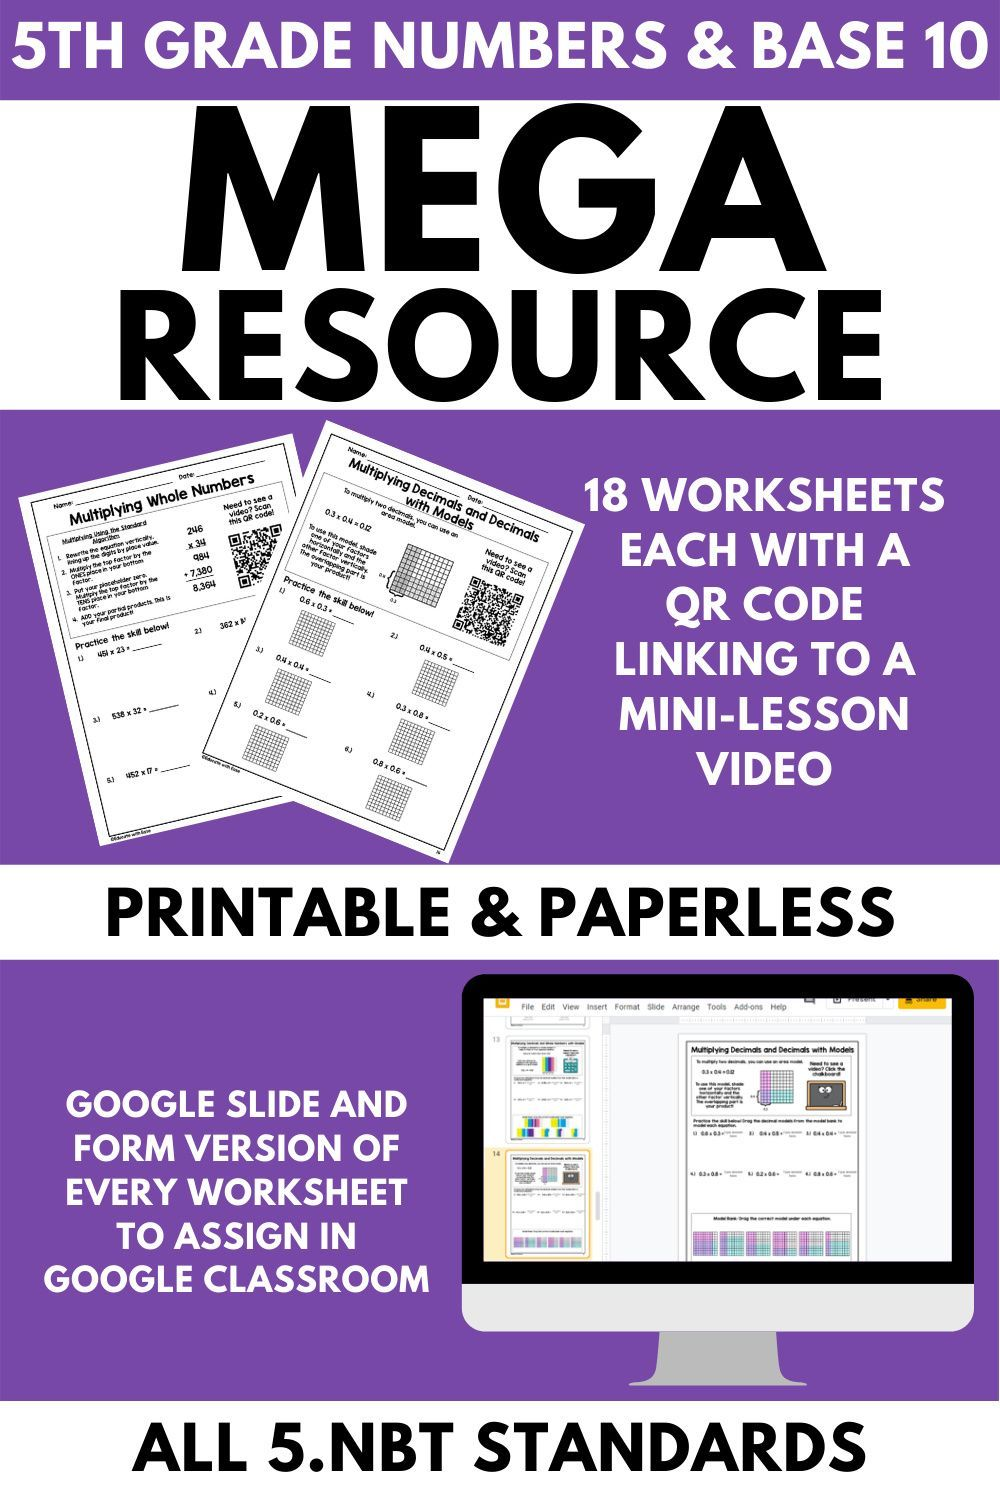 hight resolution of 5th Grade Numbers and Base 10 MEGA Resource   Google classroom resources